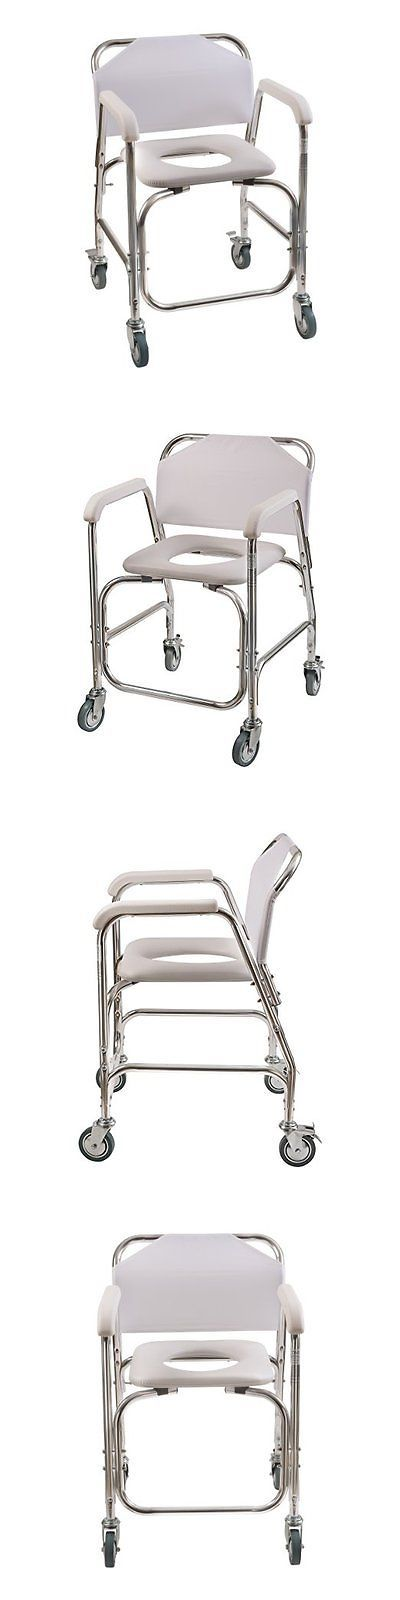 Portable Commode Chair For Elderly Shower Chair Co Pictures ...